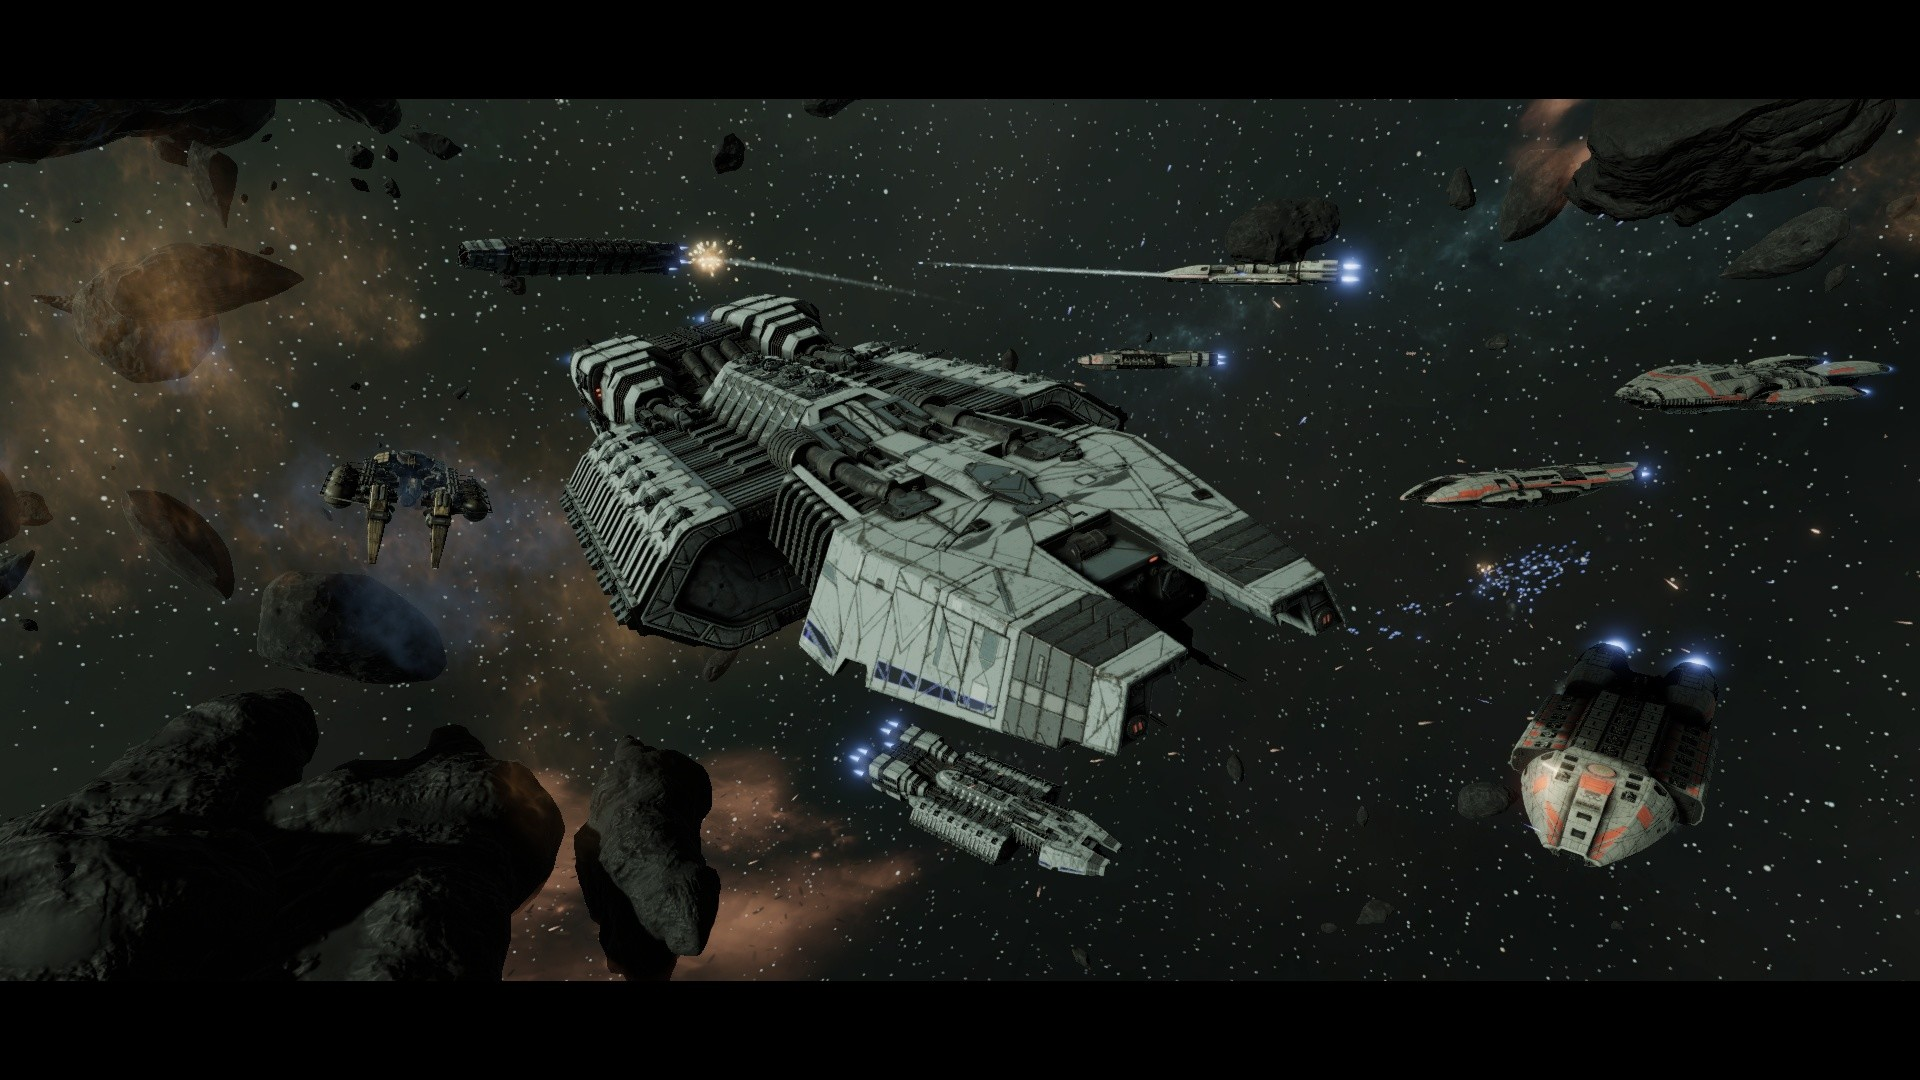 """In Battlestar Galactica: Deadlock, battlestar-class multi-role carrier  ships are the newest ships in the Colonial fleets. Black Lab  Games/Slitherine. """""""